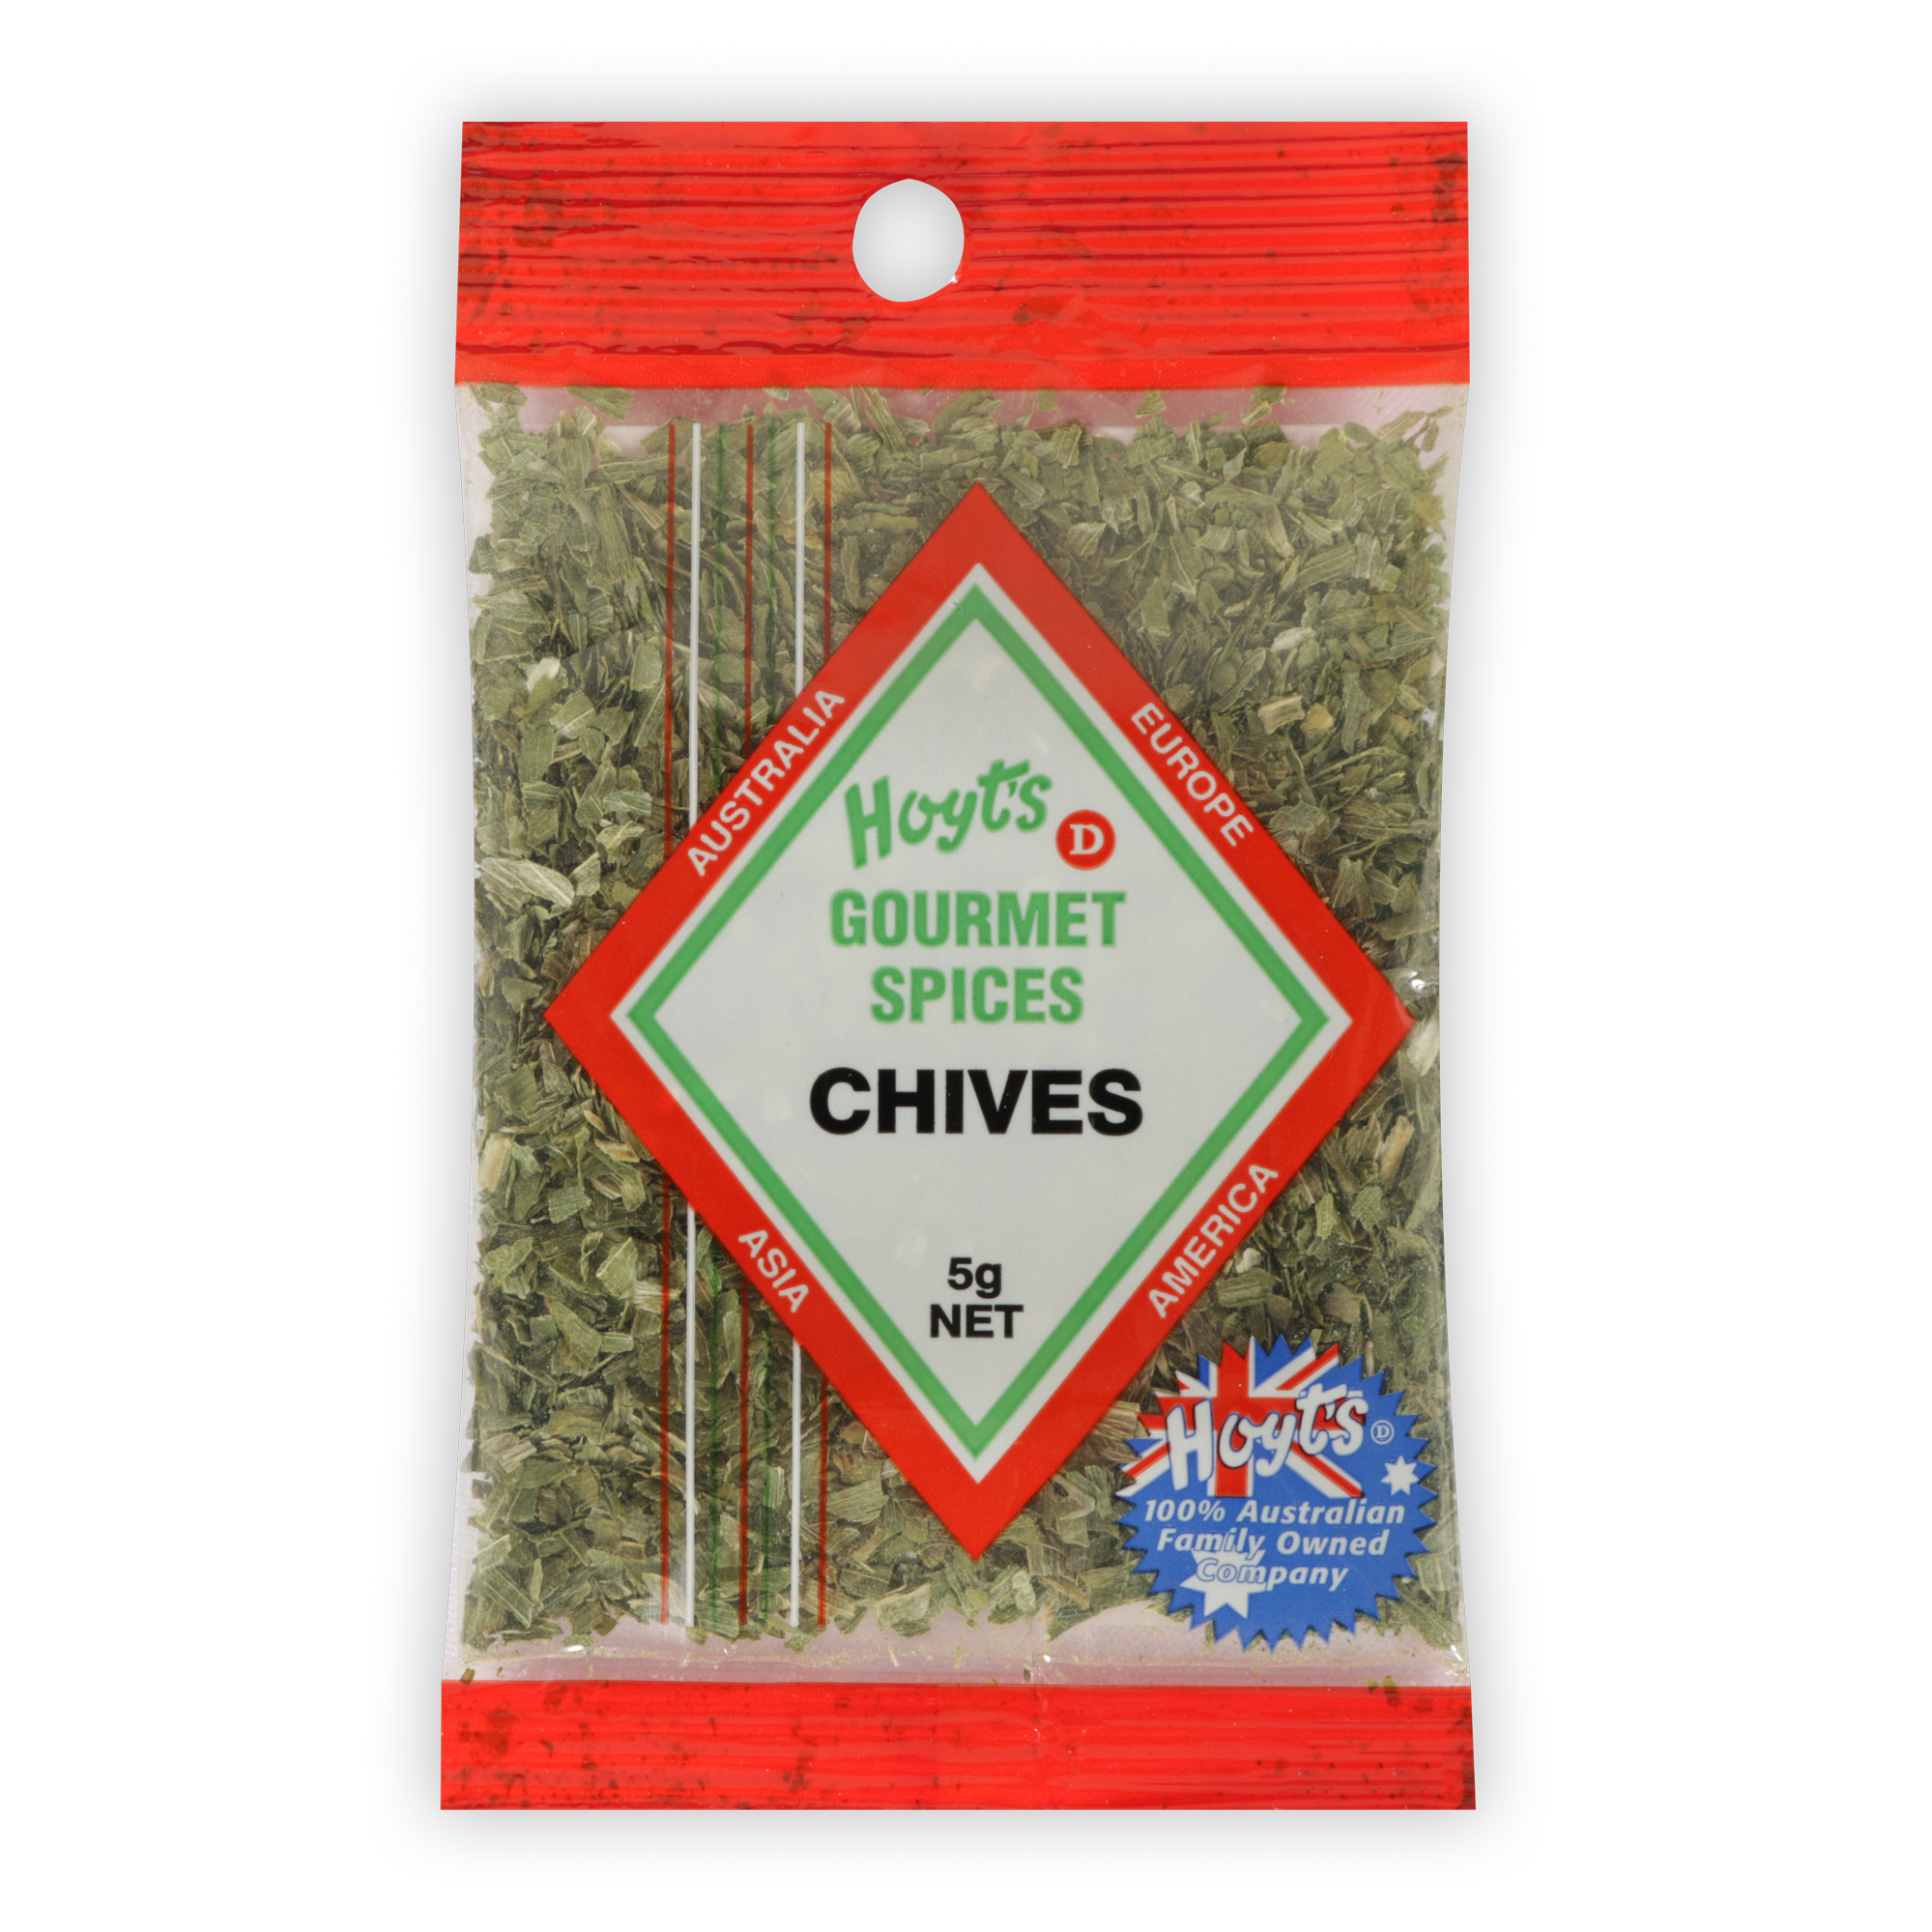 Gourmet Chives 5g - 9300725010119 1